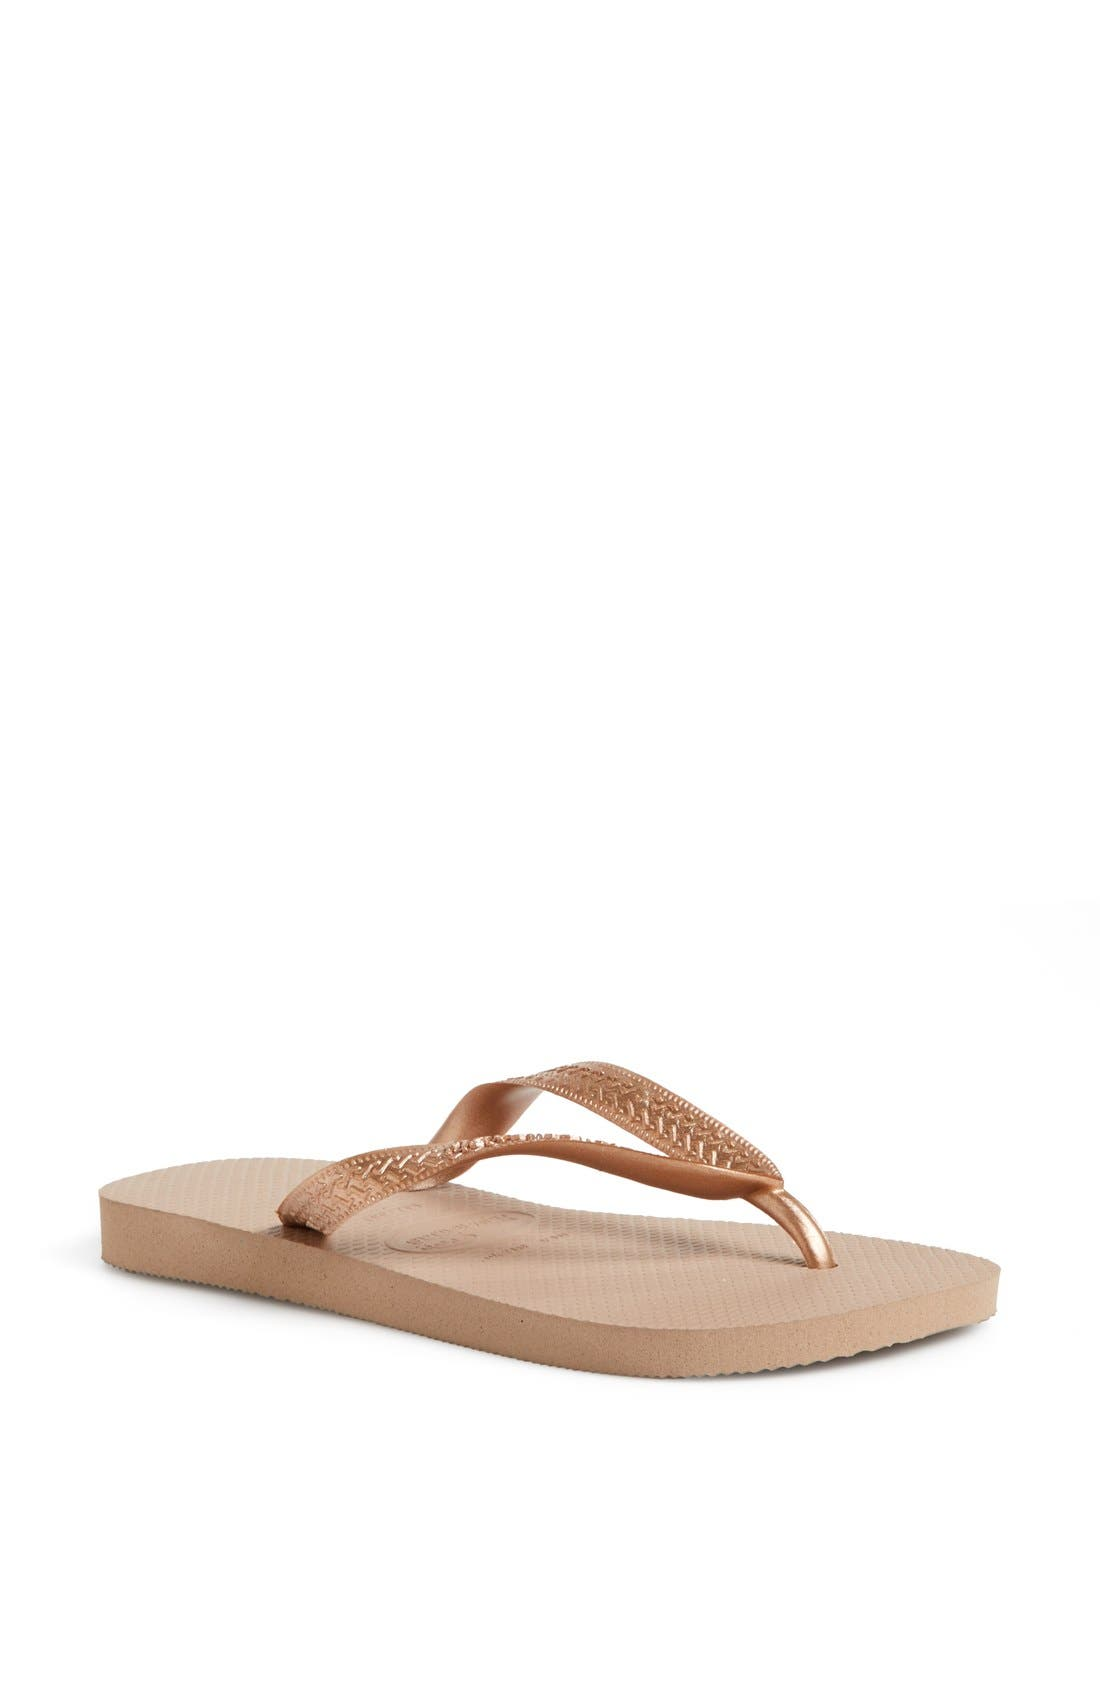 Alternate Image 1 Selected - Havaianas 'Metallic Top' Thong Sandal (Women)